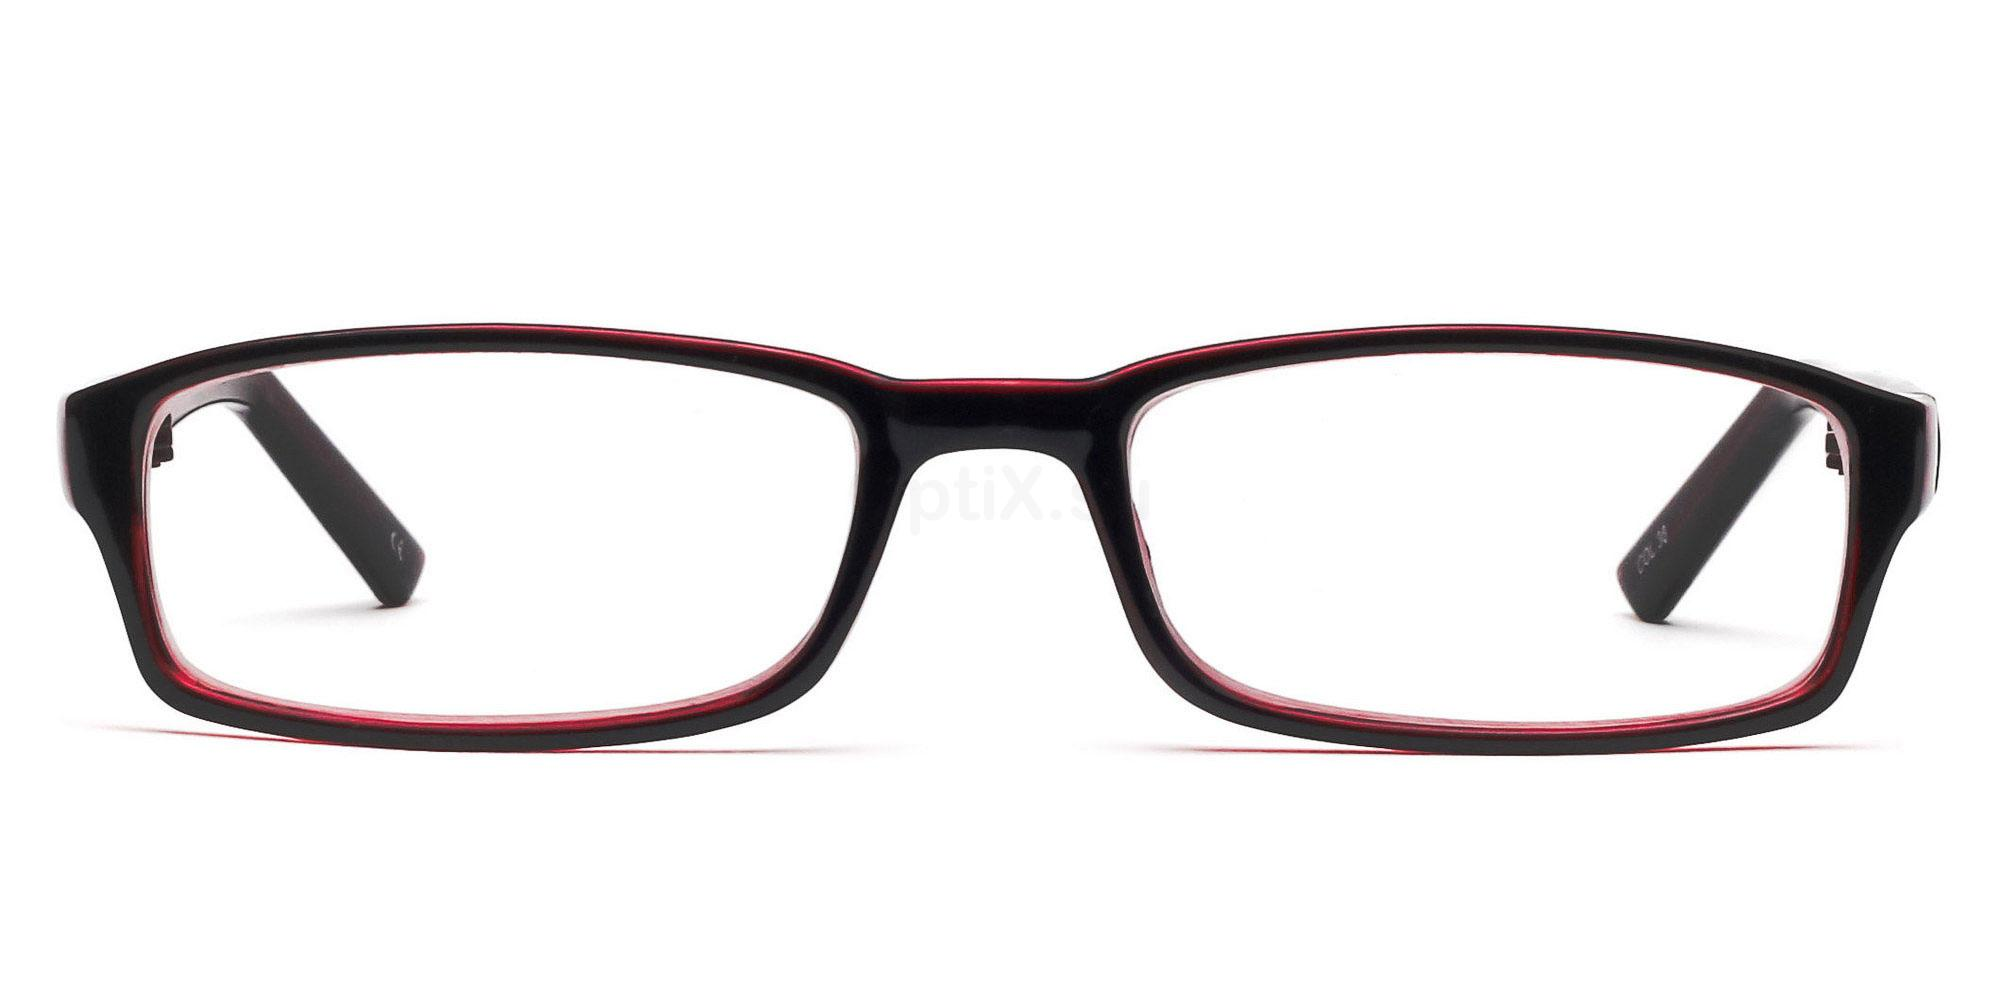 COL.38 2264 - Black and Red , Savannah